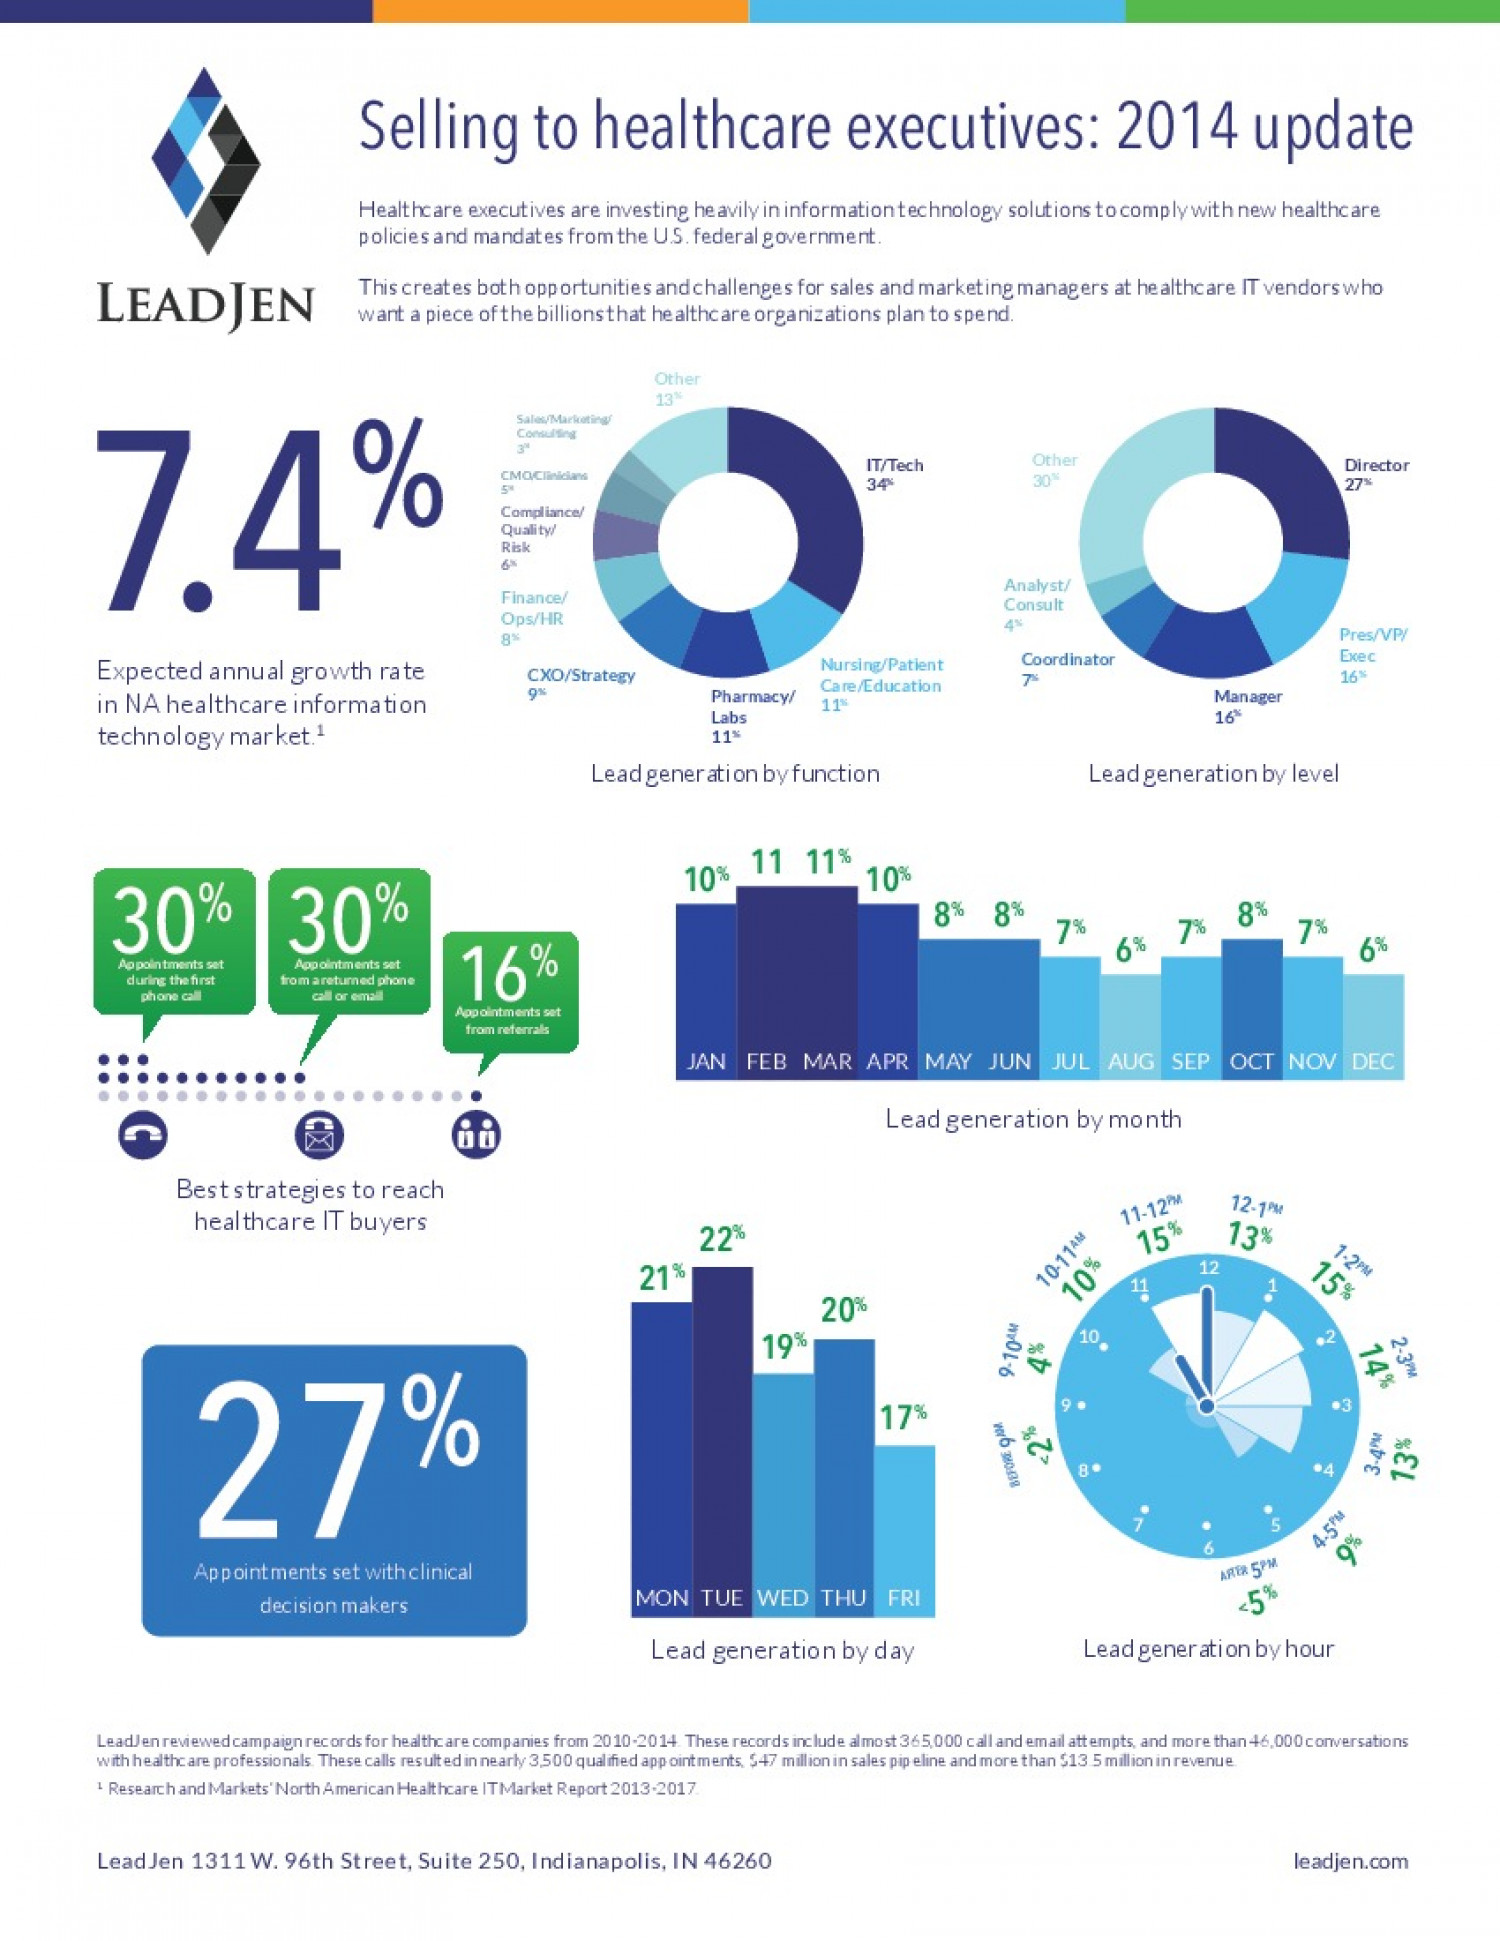 Infographic Selling to healthcare executives 2014 update Infographic